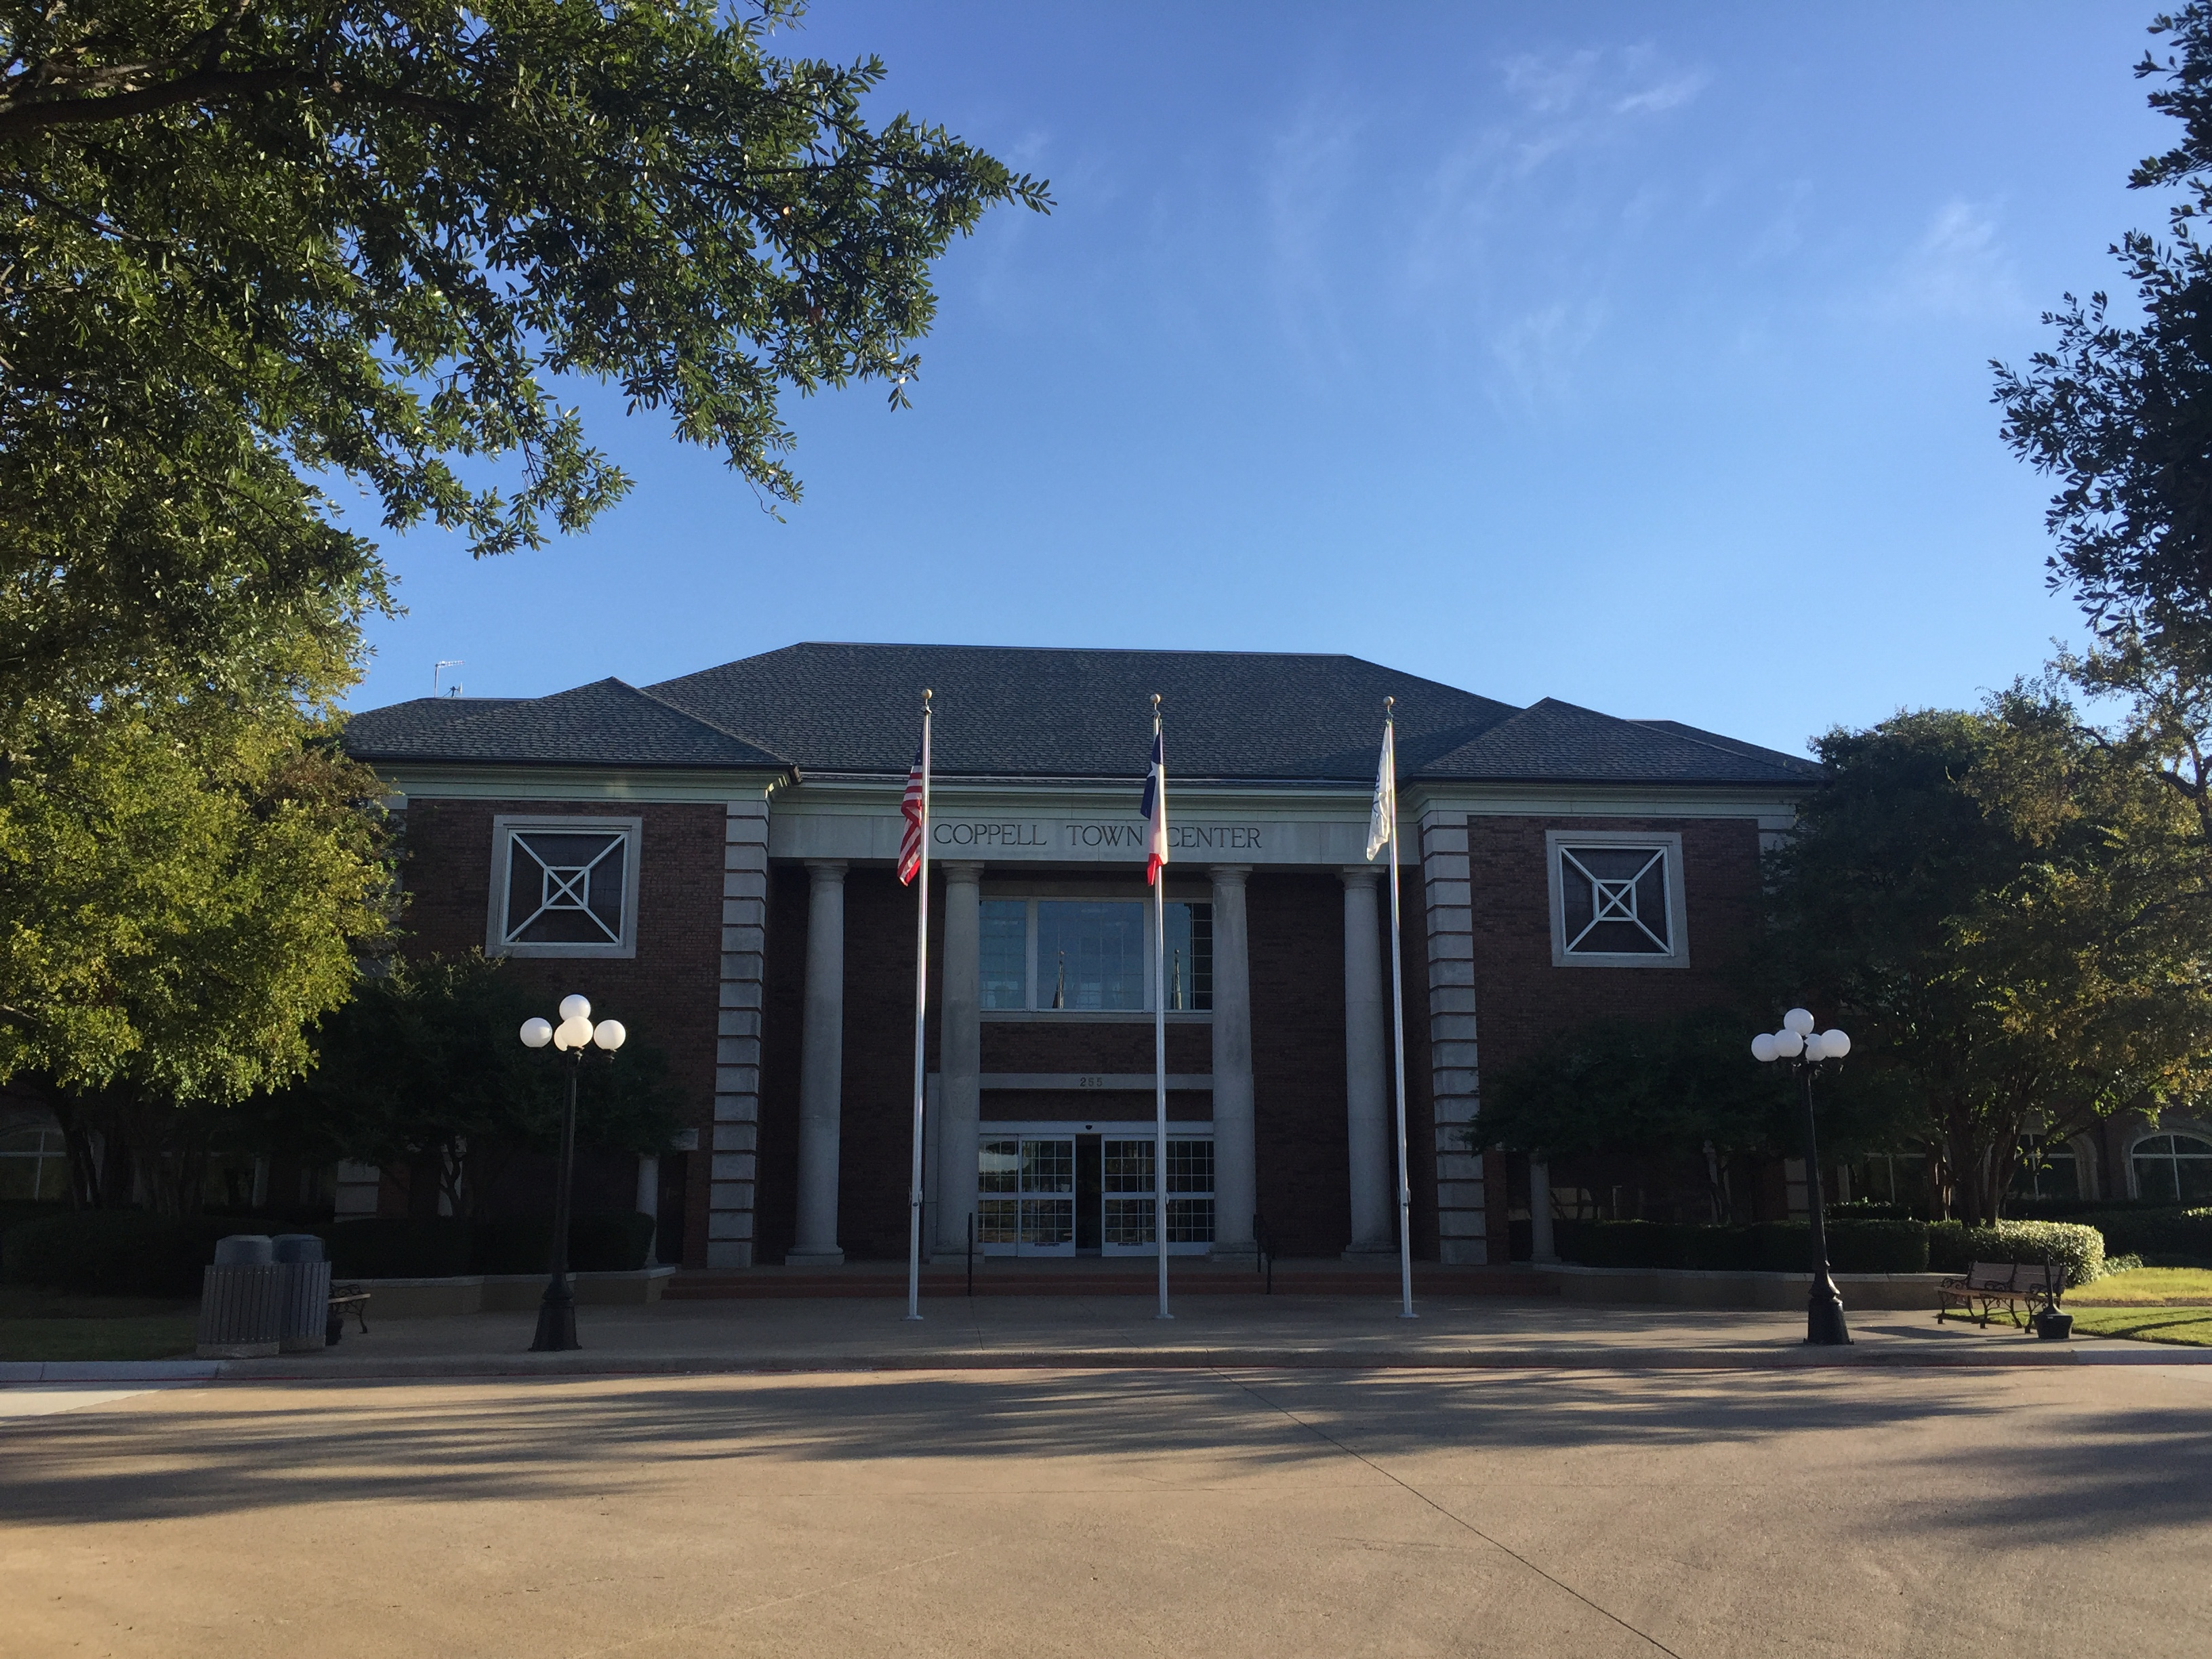 Coppell City Hall is located in Town Center next to the fire station and Coppell Community Garden. Many community events such as Music in the Plaza, Oak Fest, and the annual tree lighting are held in the Coppell Town Center Plaza behind City Hall. Photo by Kelly Monaghan.